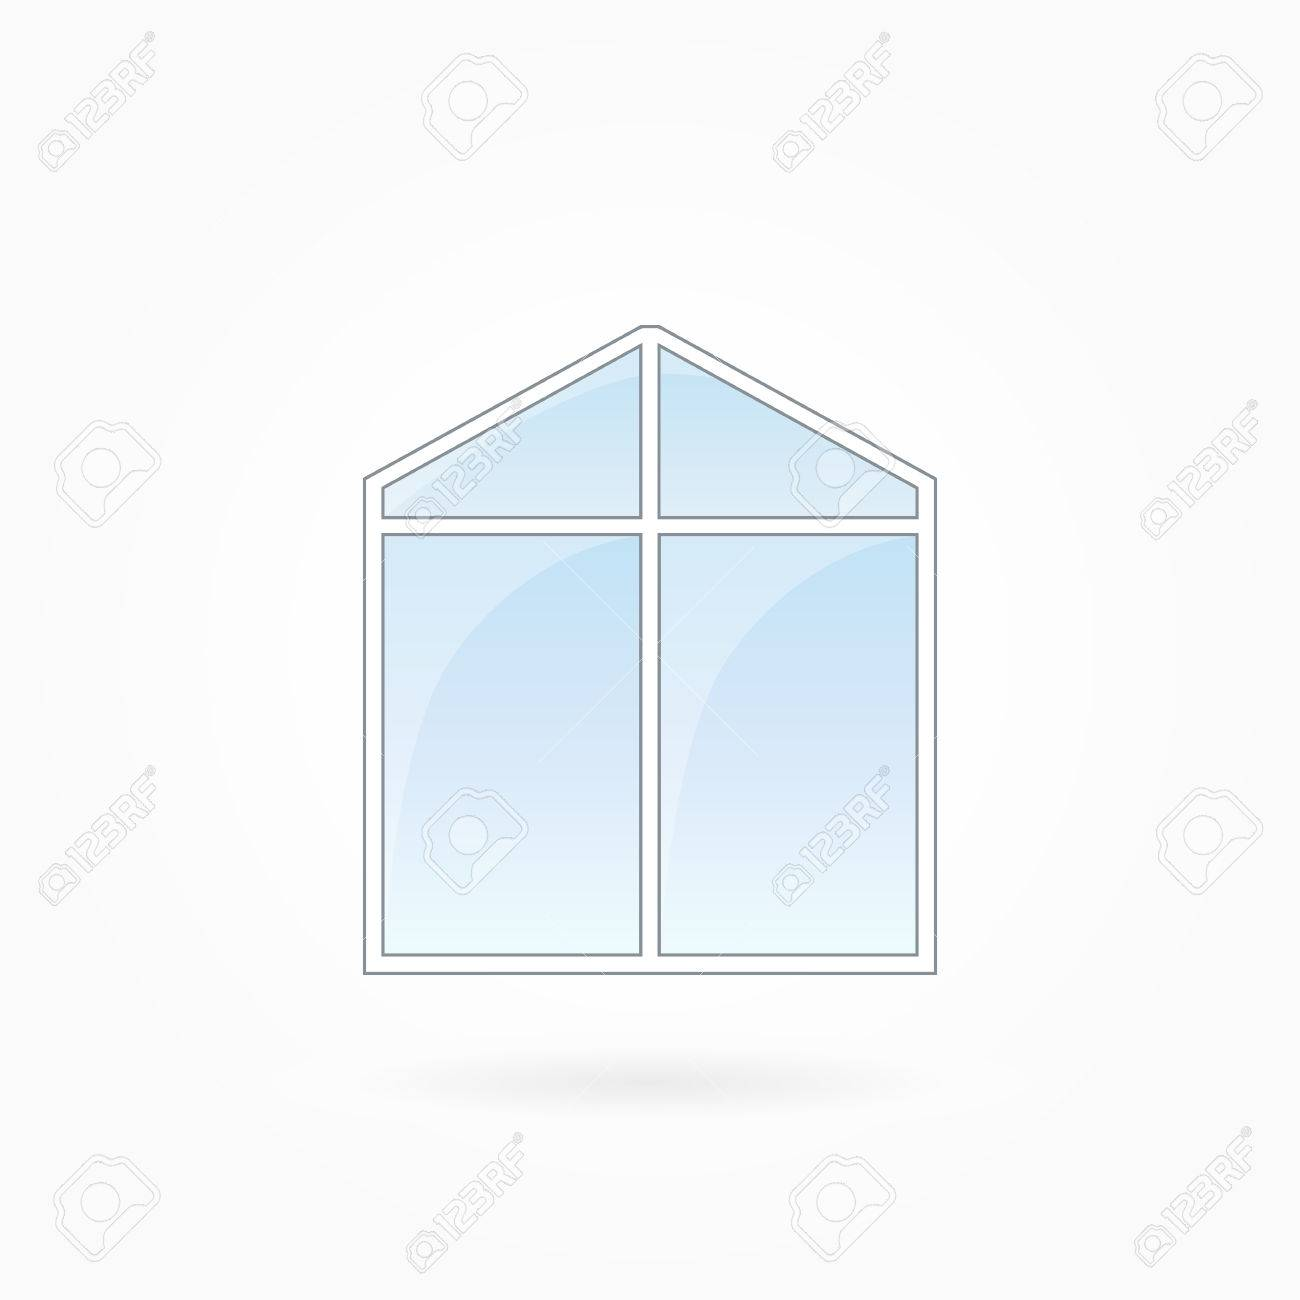 Window Frame Vector Illustration, Double Modern Window With ...